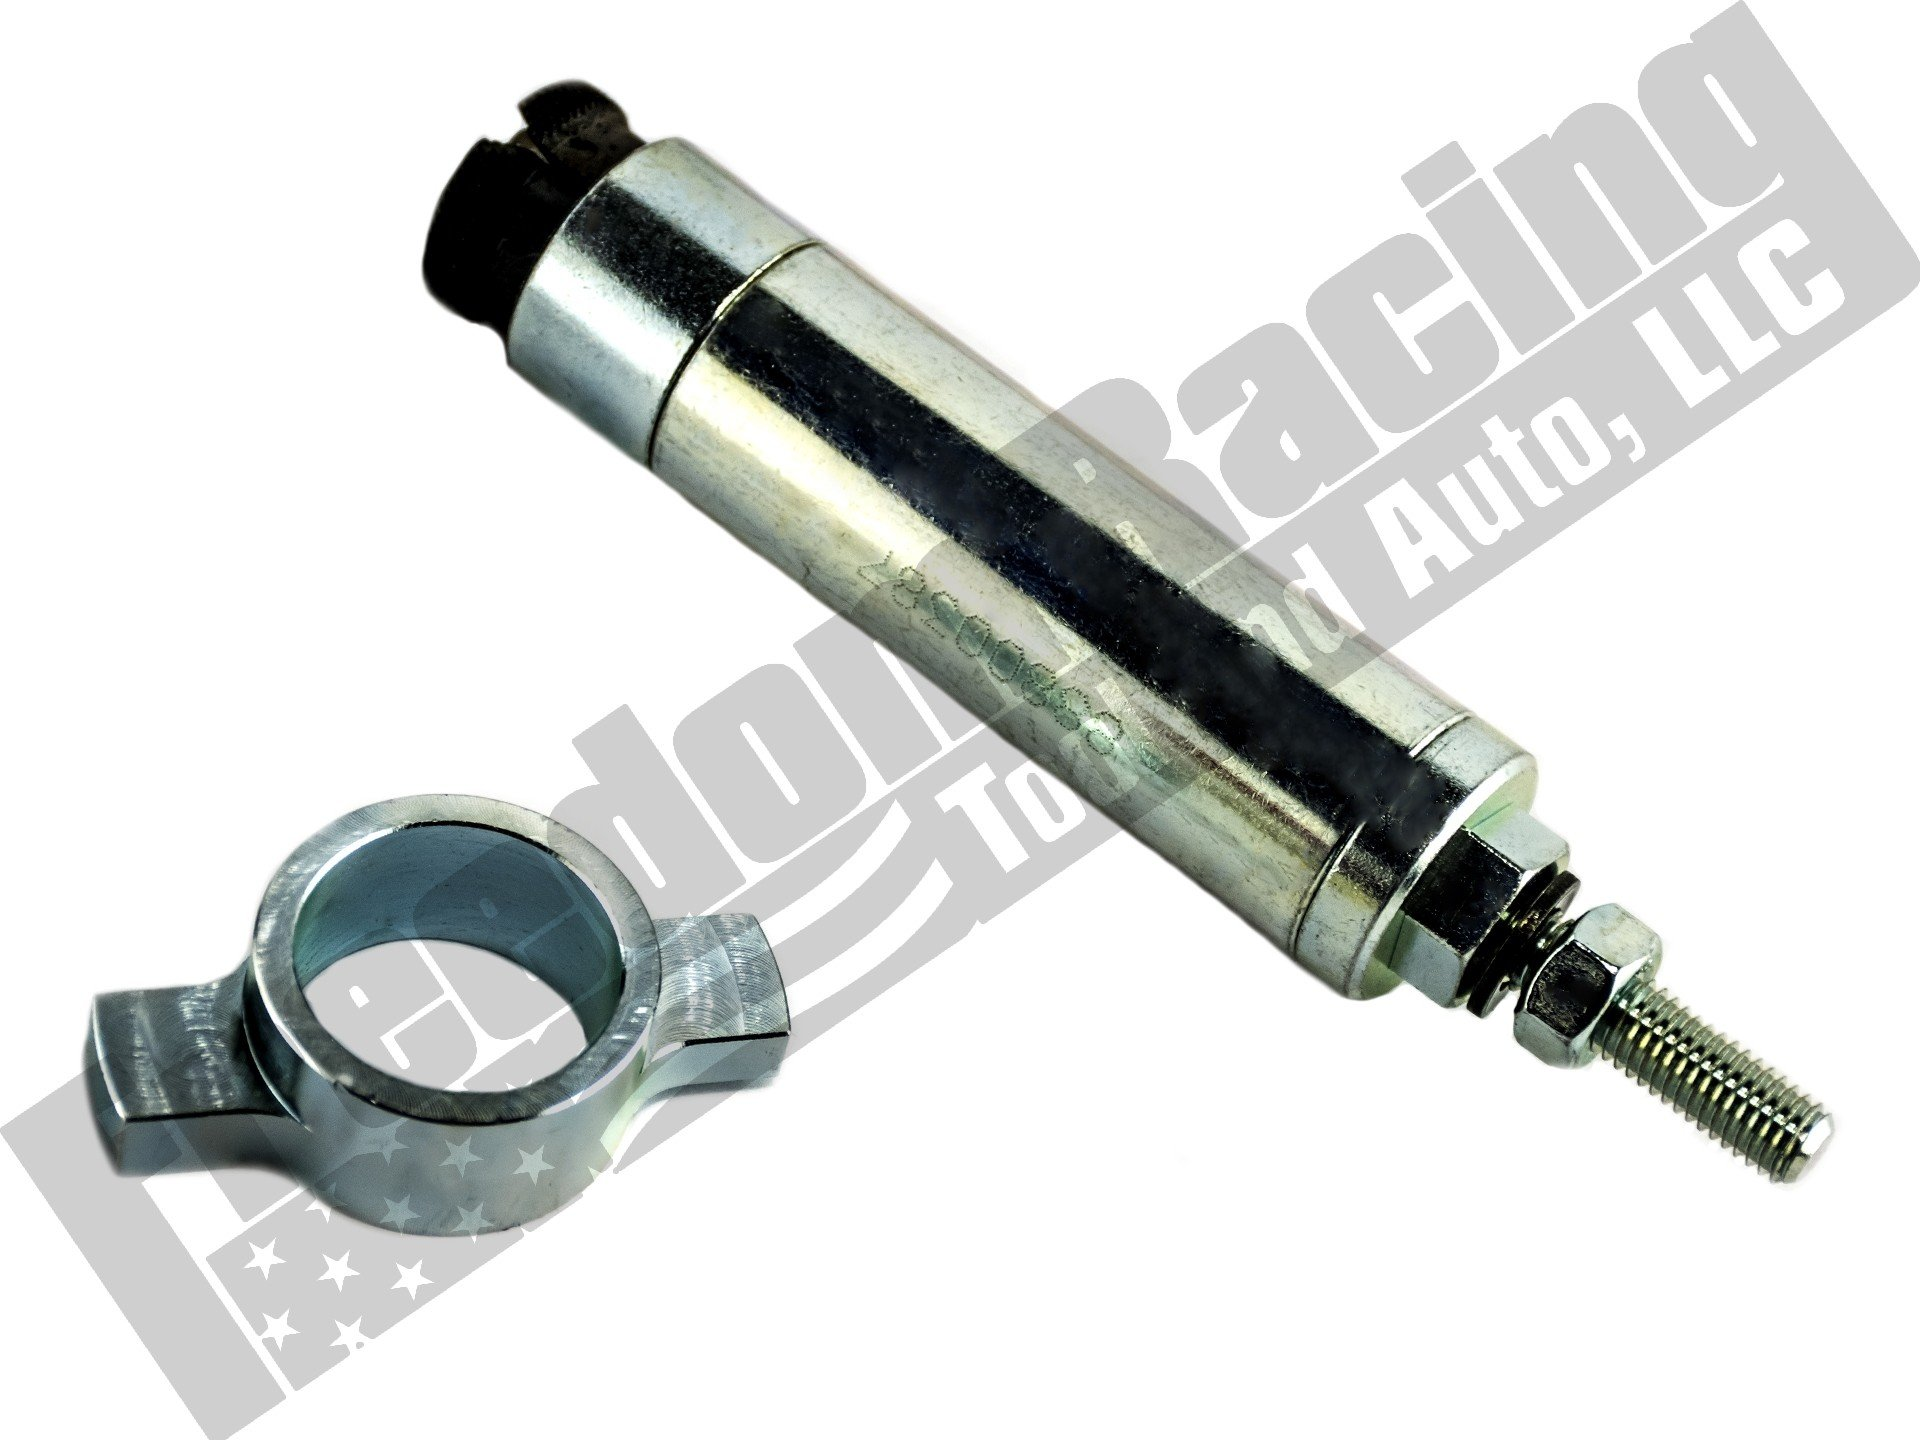 88800387 Fuel Injector Sleeve/Tube/Cup Remover